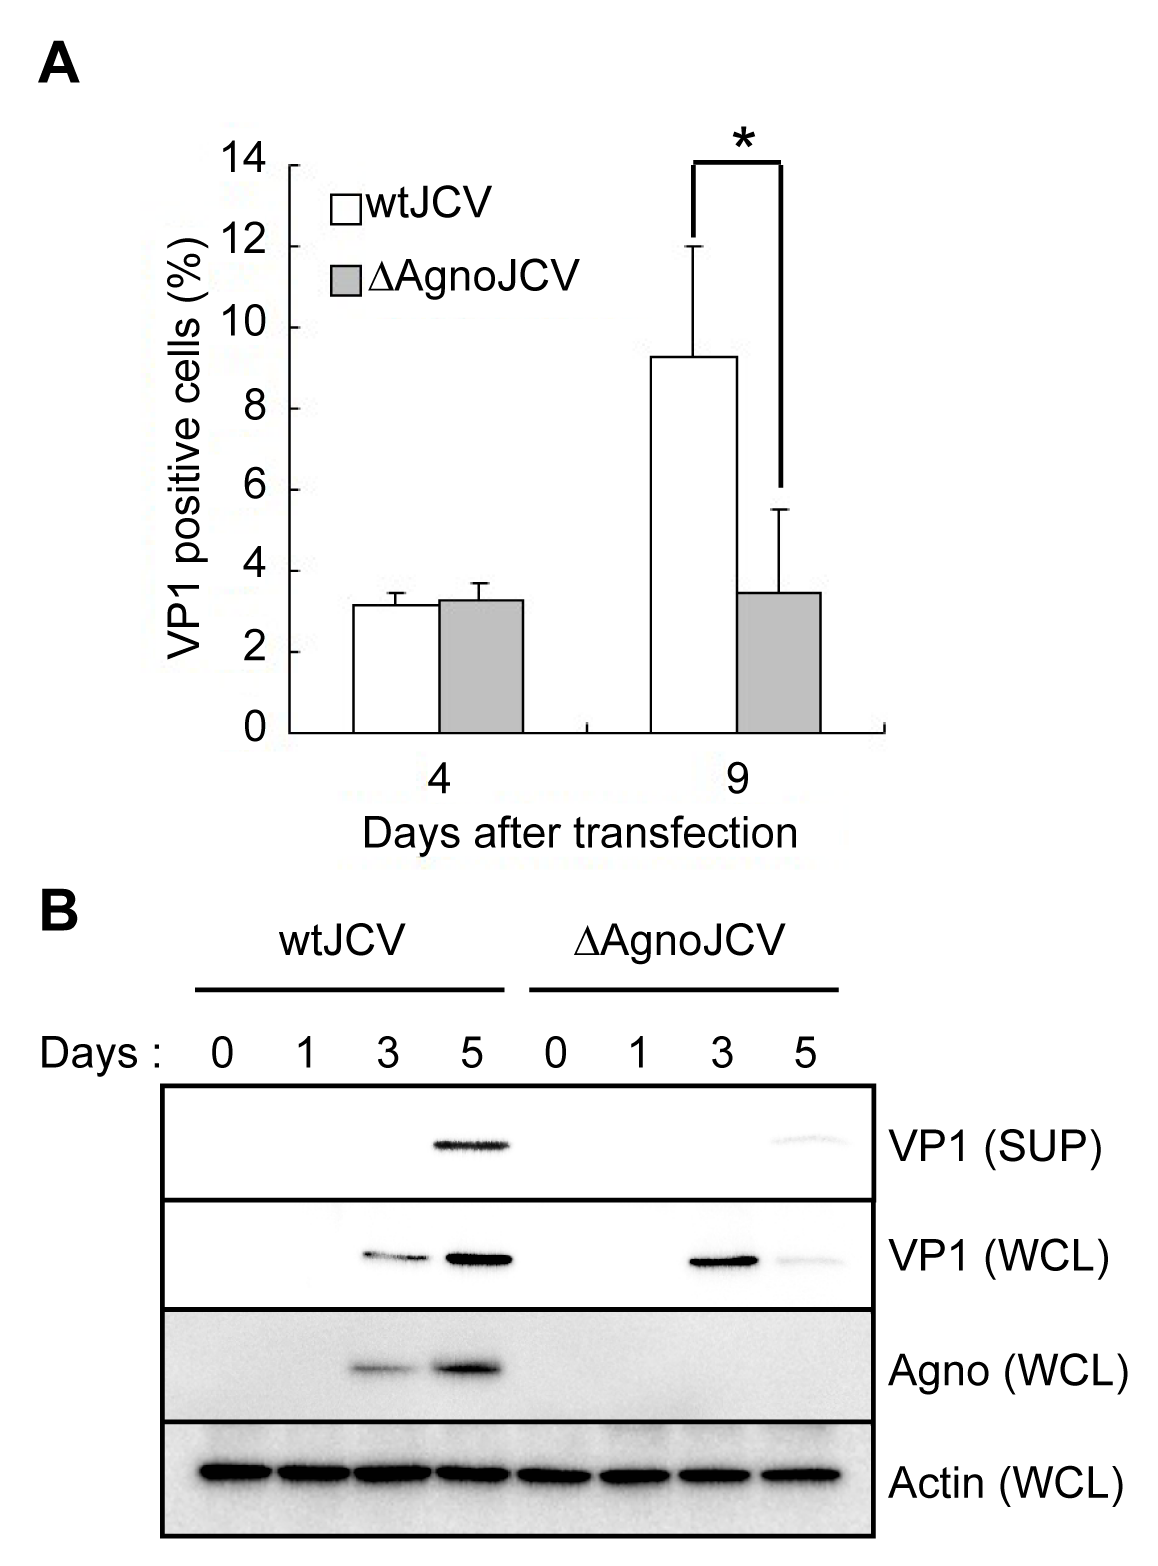 Agnoprotein facilitates virion release and enhances viral propagation.